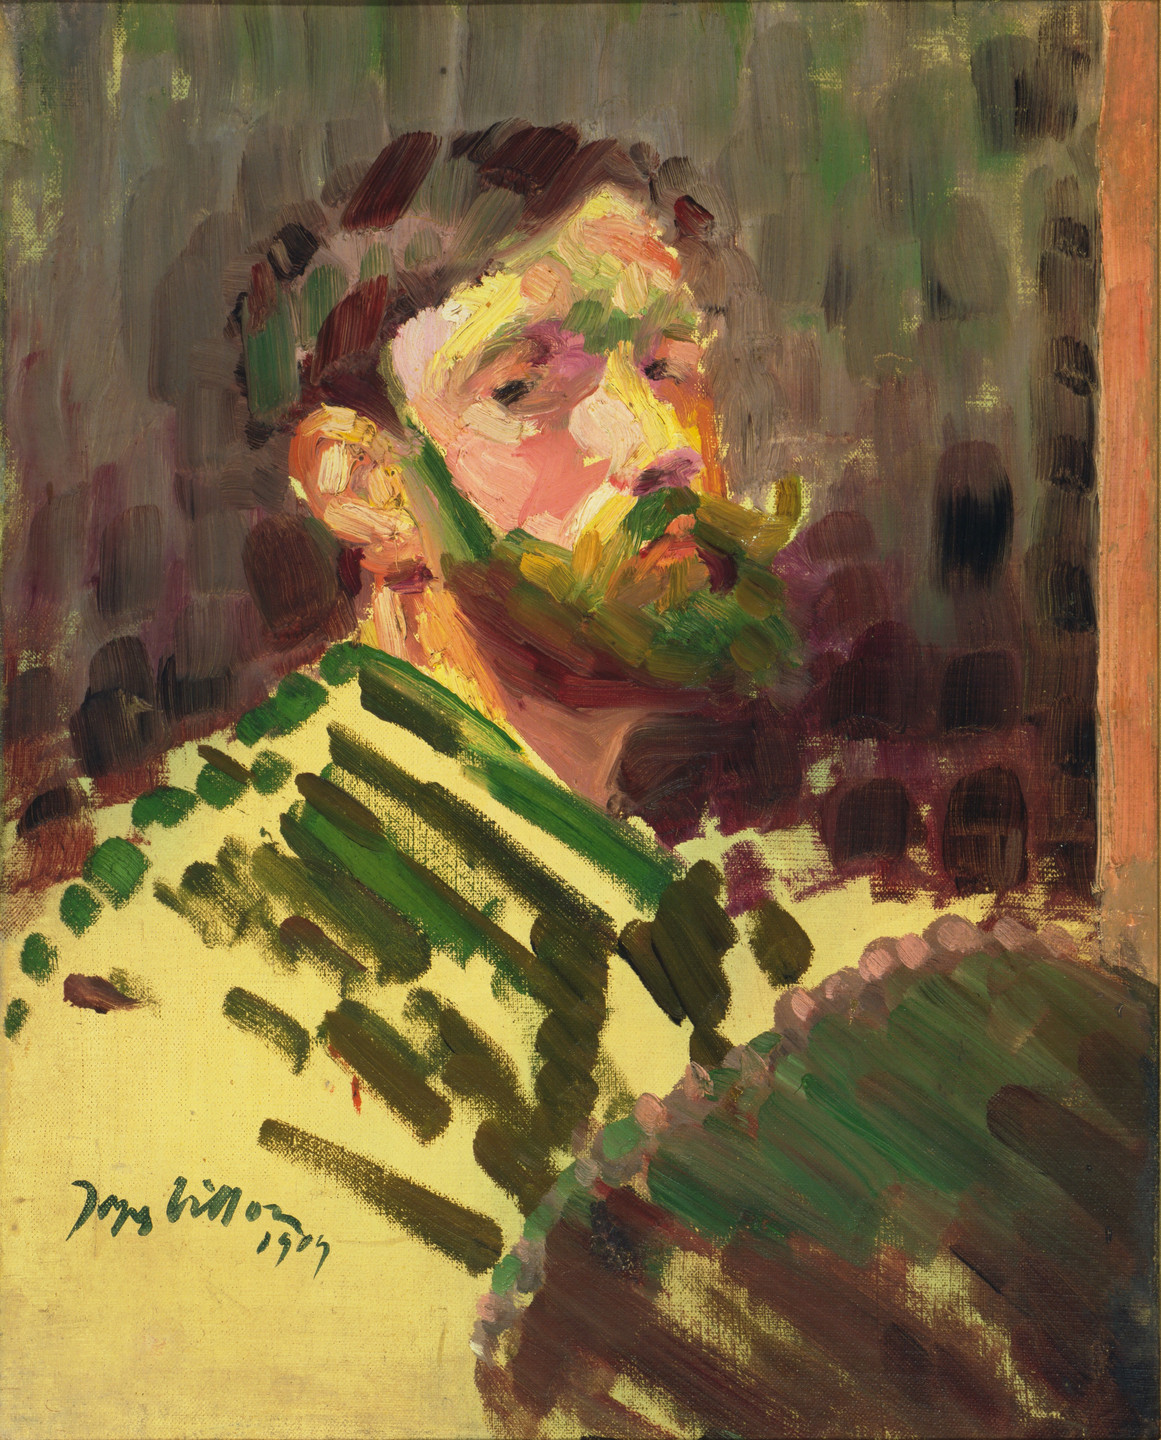 Jacques Villon. Portrait of the Artist. 1909